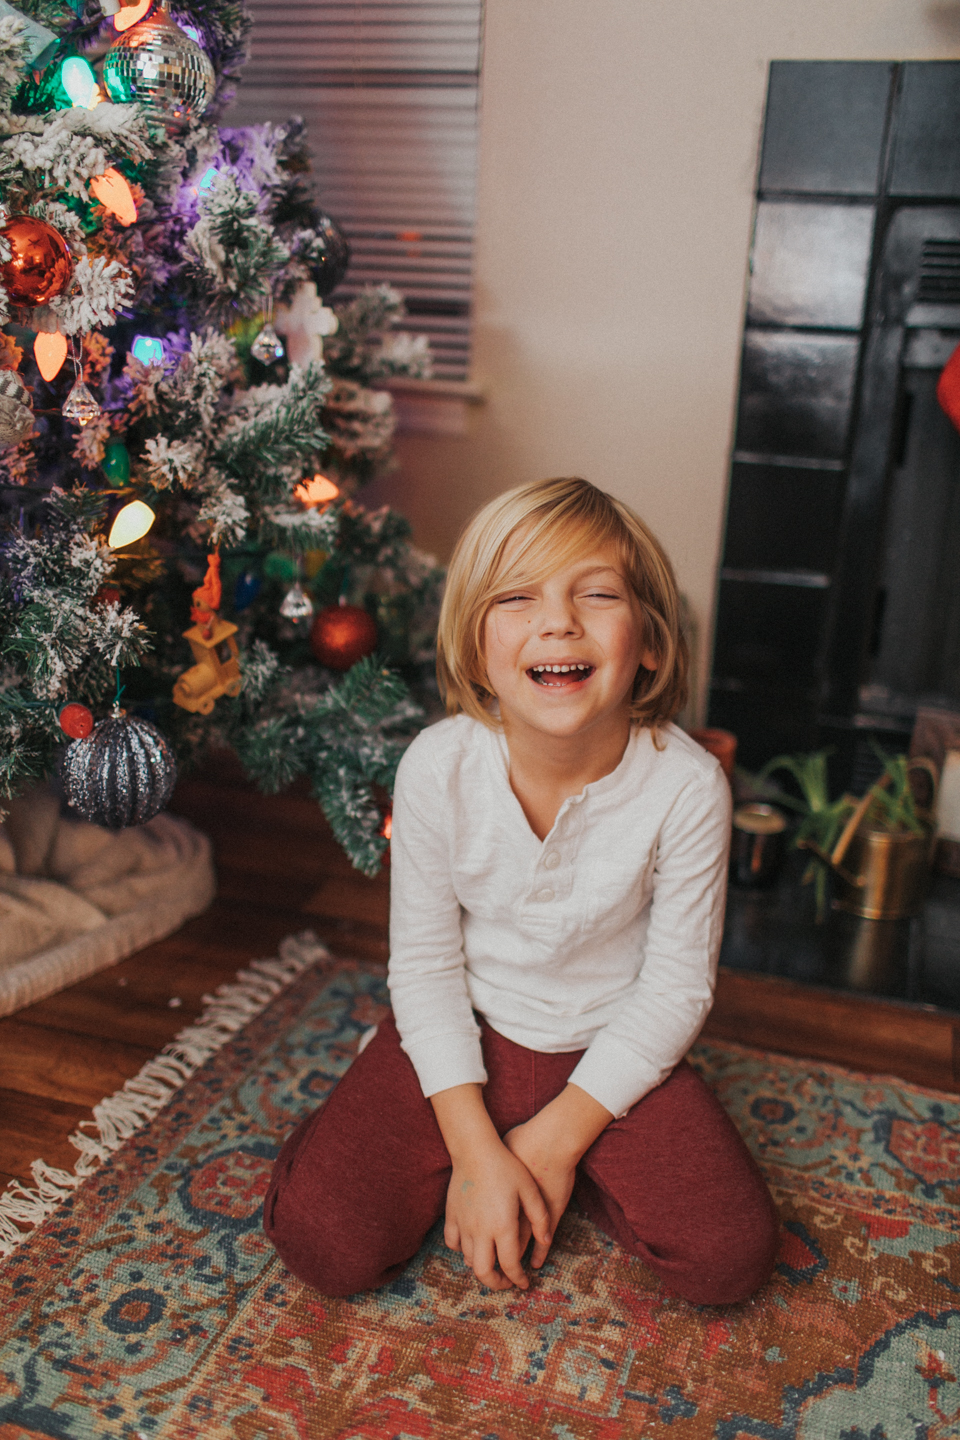 TIPS FOR BETTER CHRISTMAS PICS - for iPhone + DSLR images